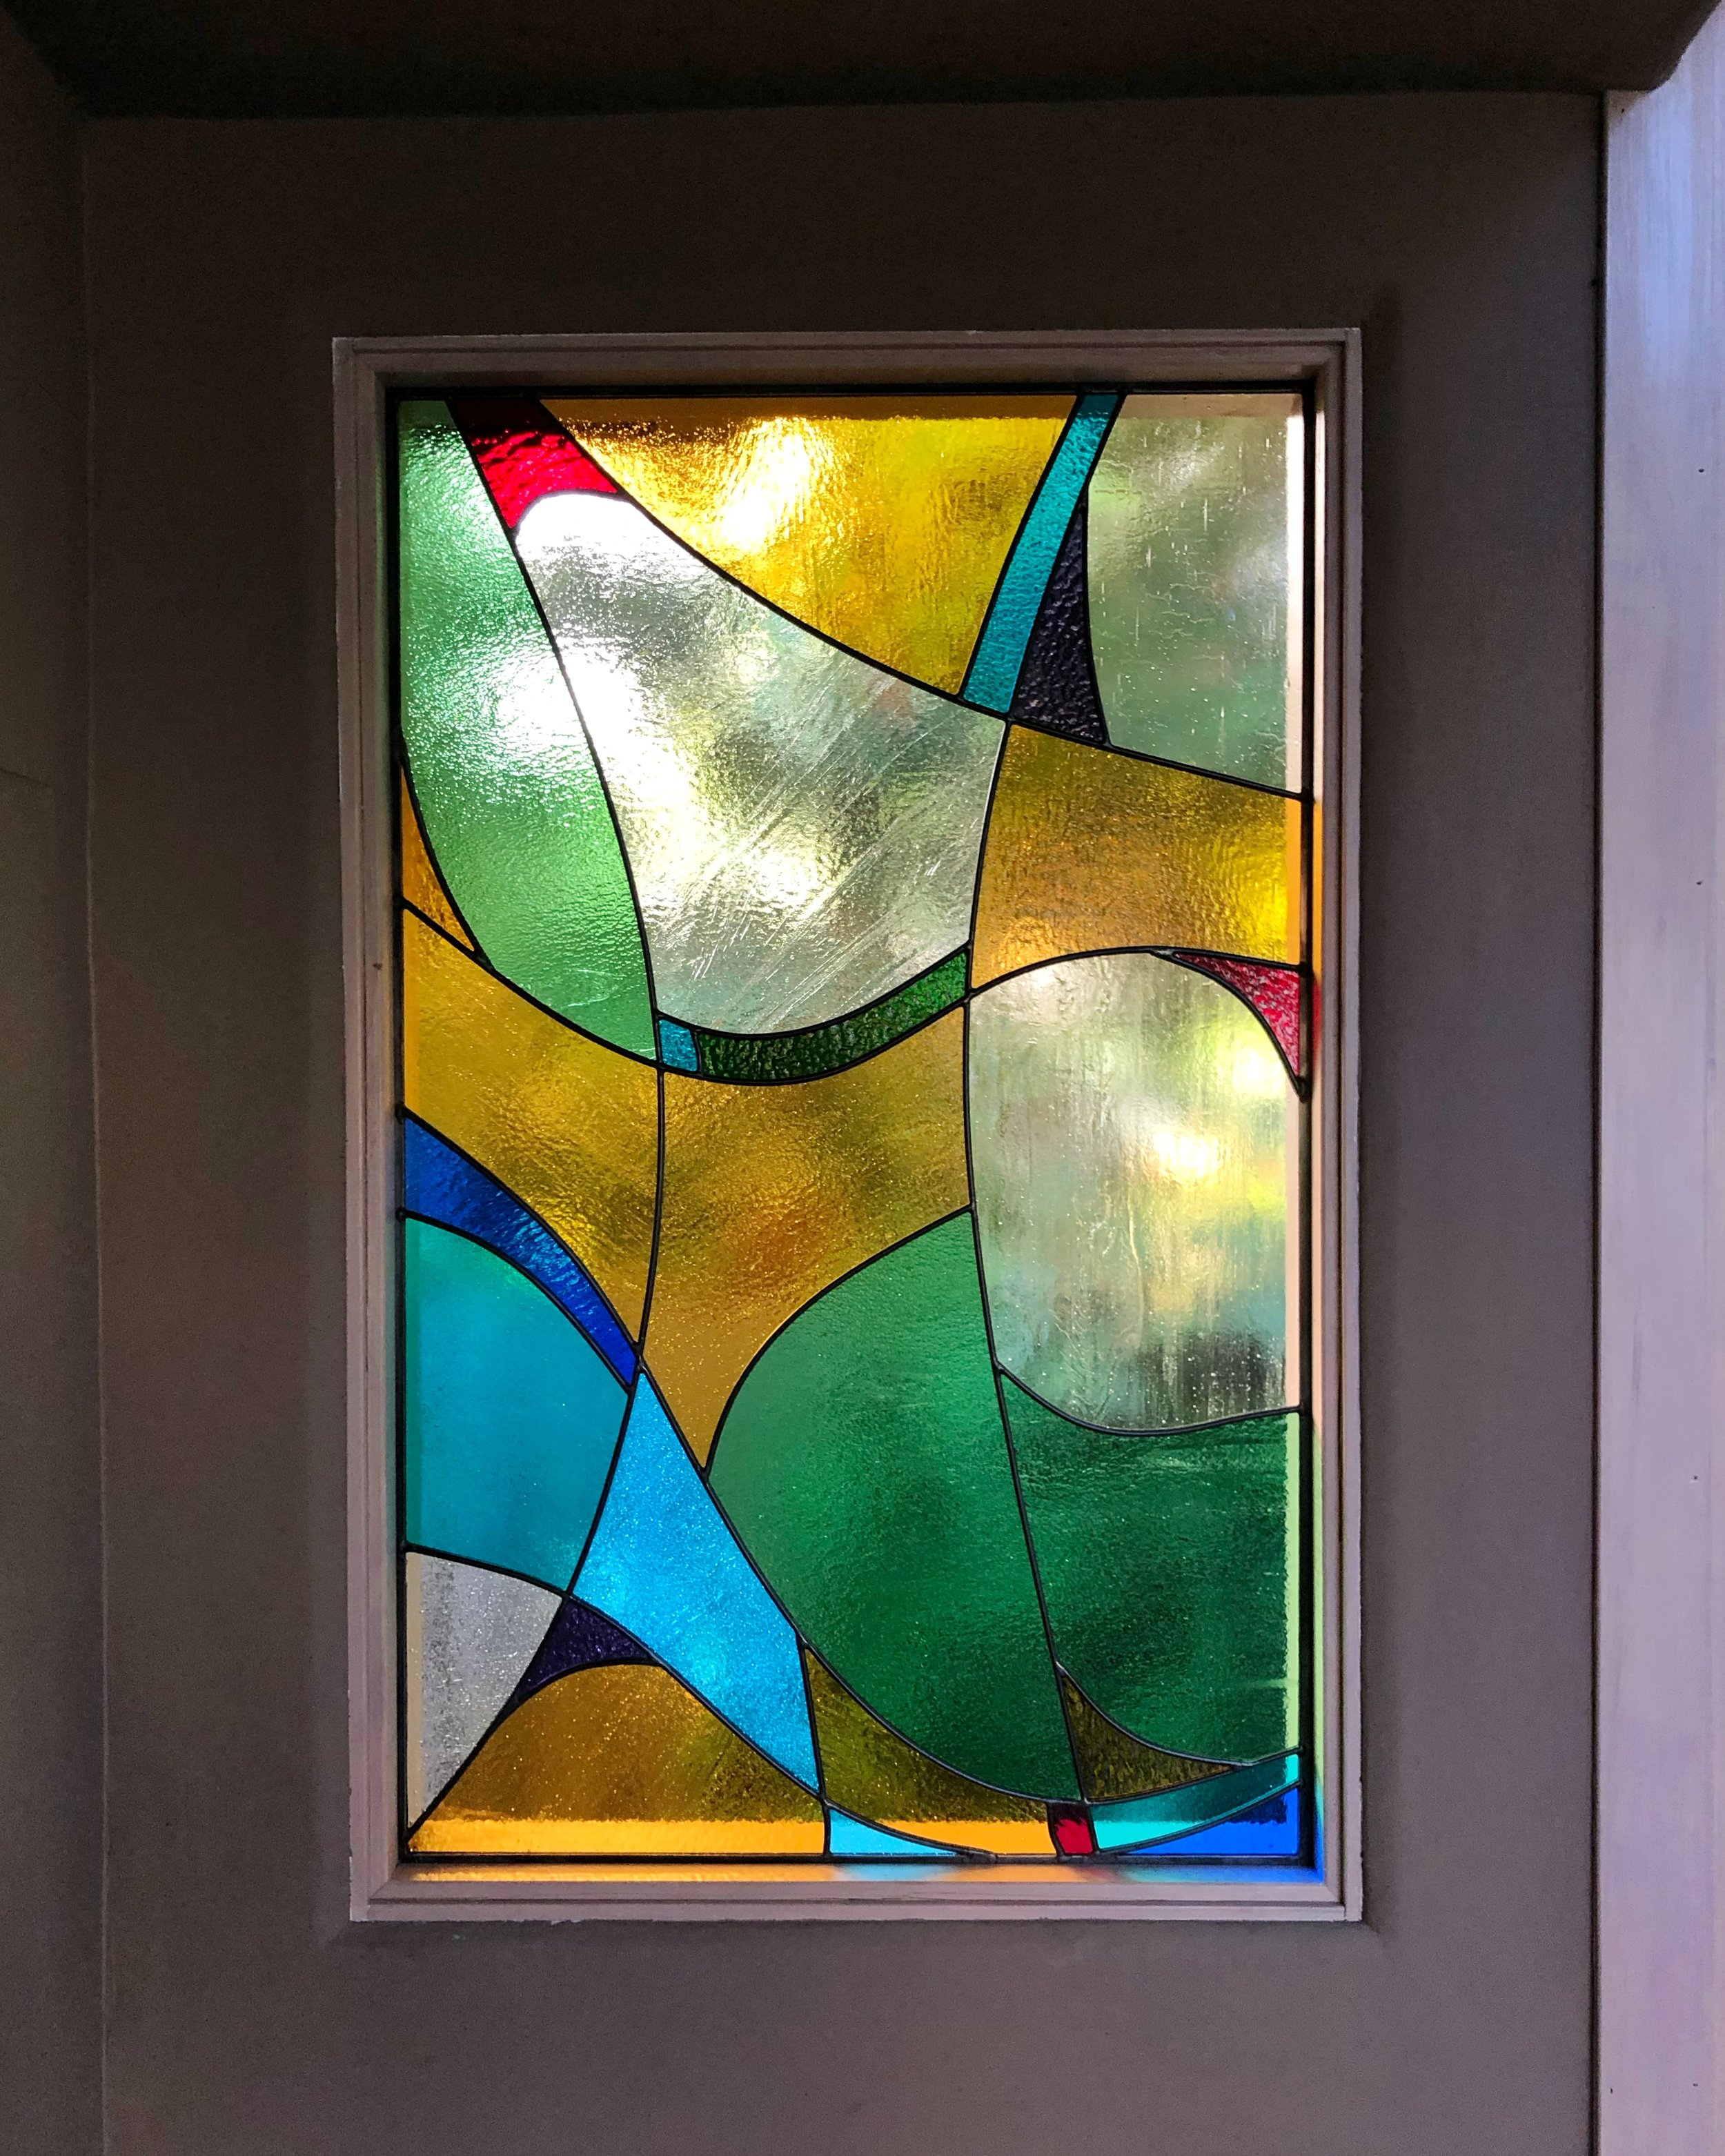 abstract design coloful fun cathedral glass privacy window sunroom atherton california stained glass leaded glass custom design legacy glass studios funky eclectic flowing color block.jpg